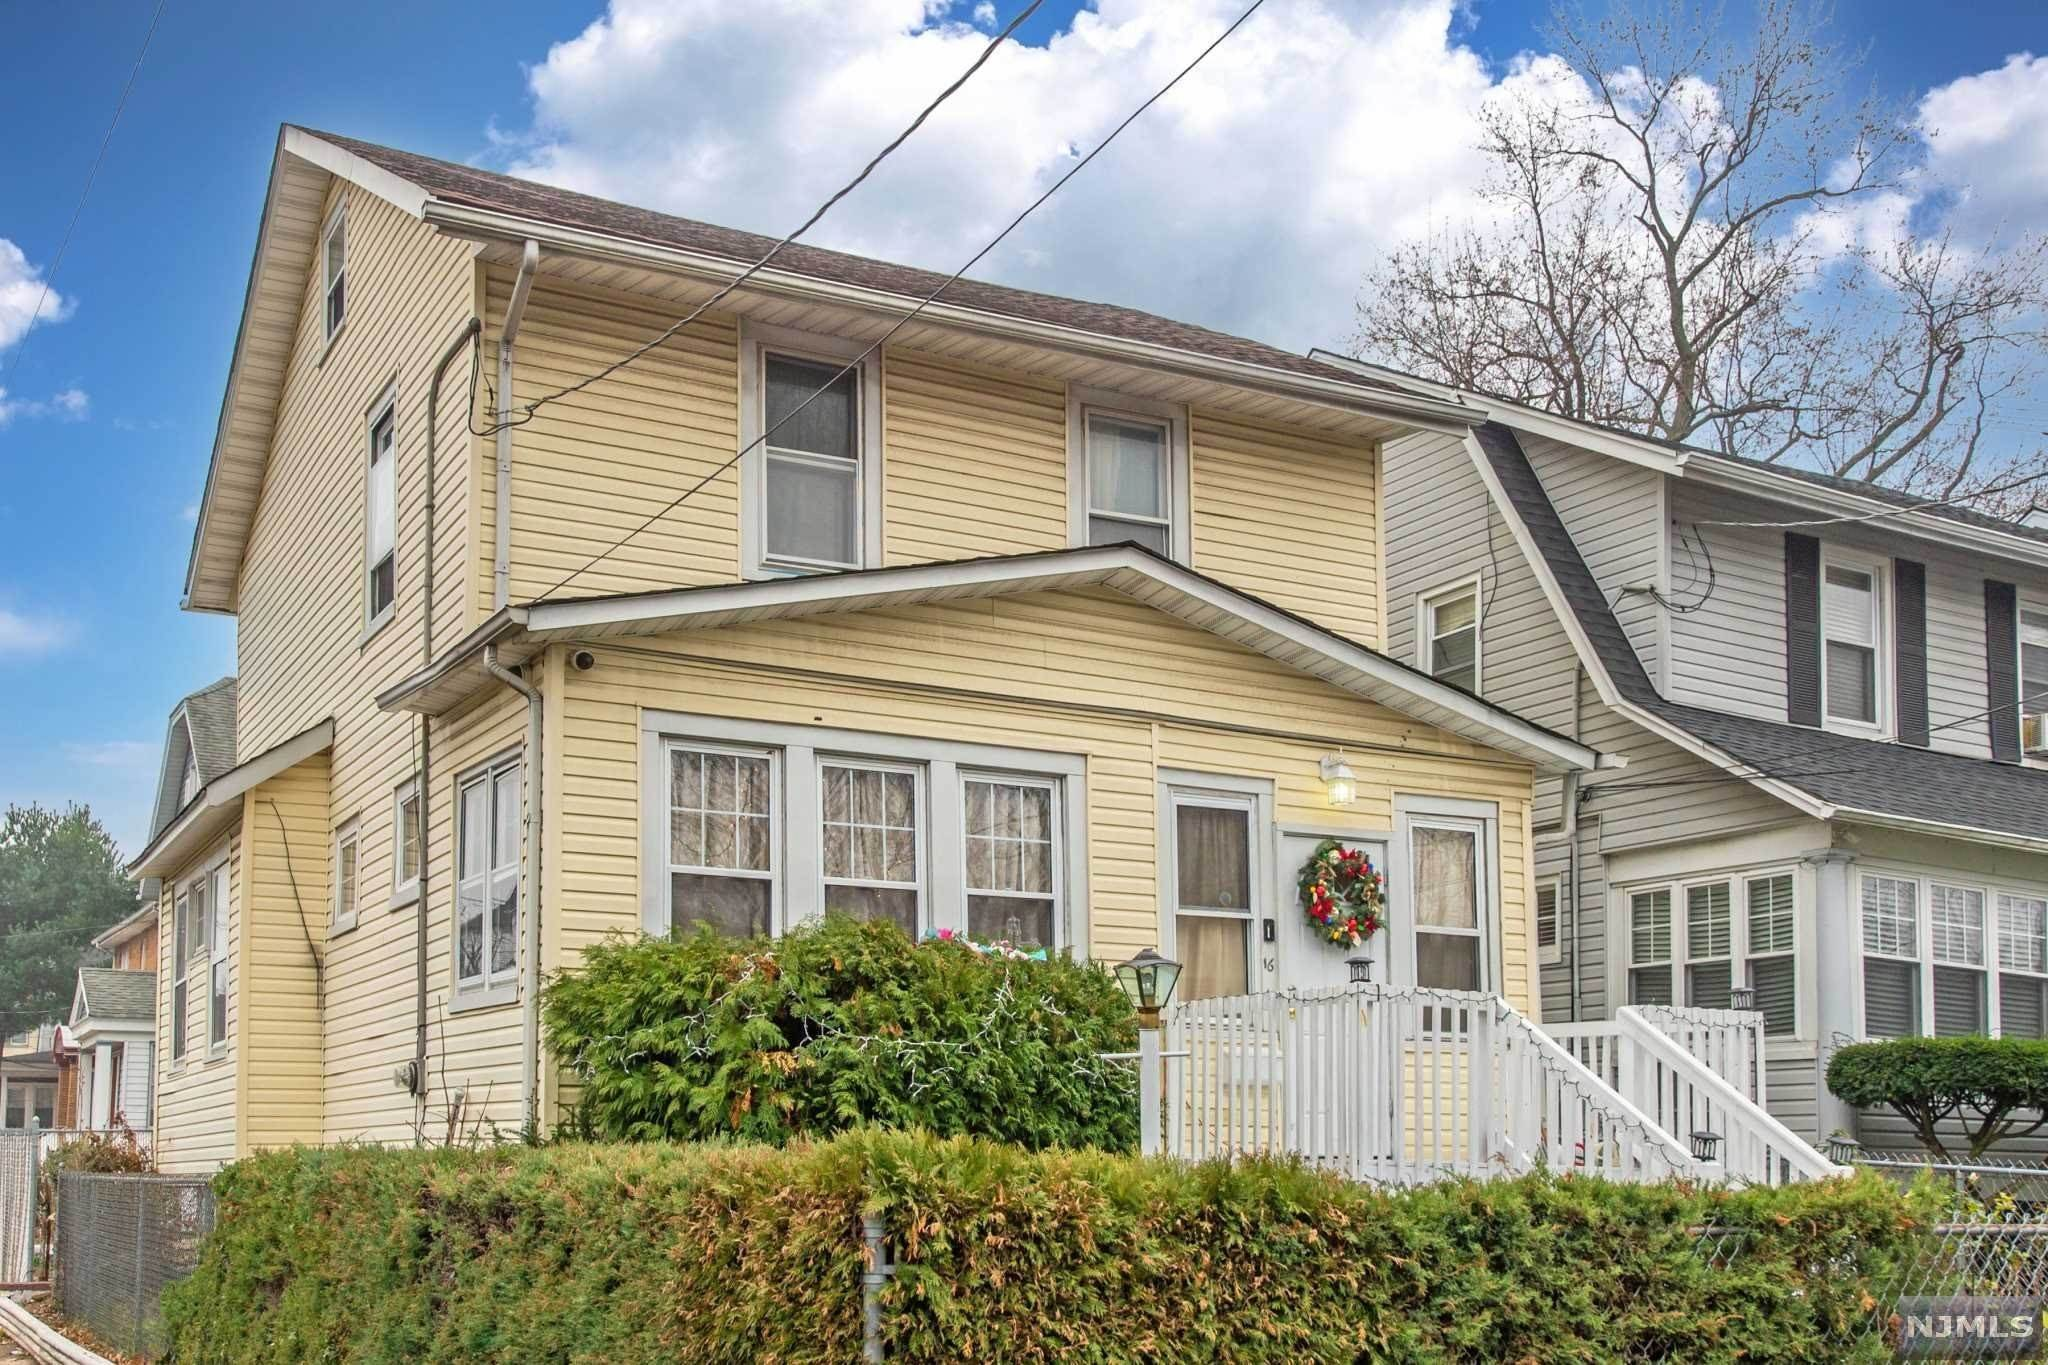 Rental Communities for Rent at 16 Vailsburg Terrace Newark, New Jersey, 07106 United States